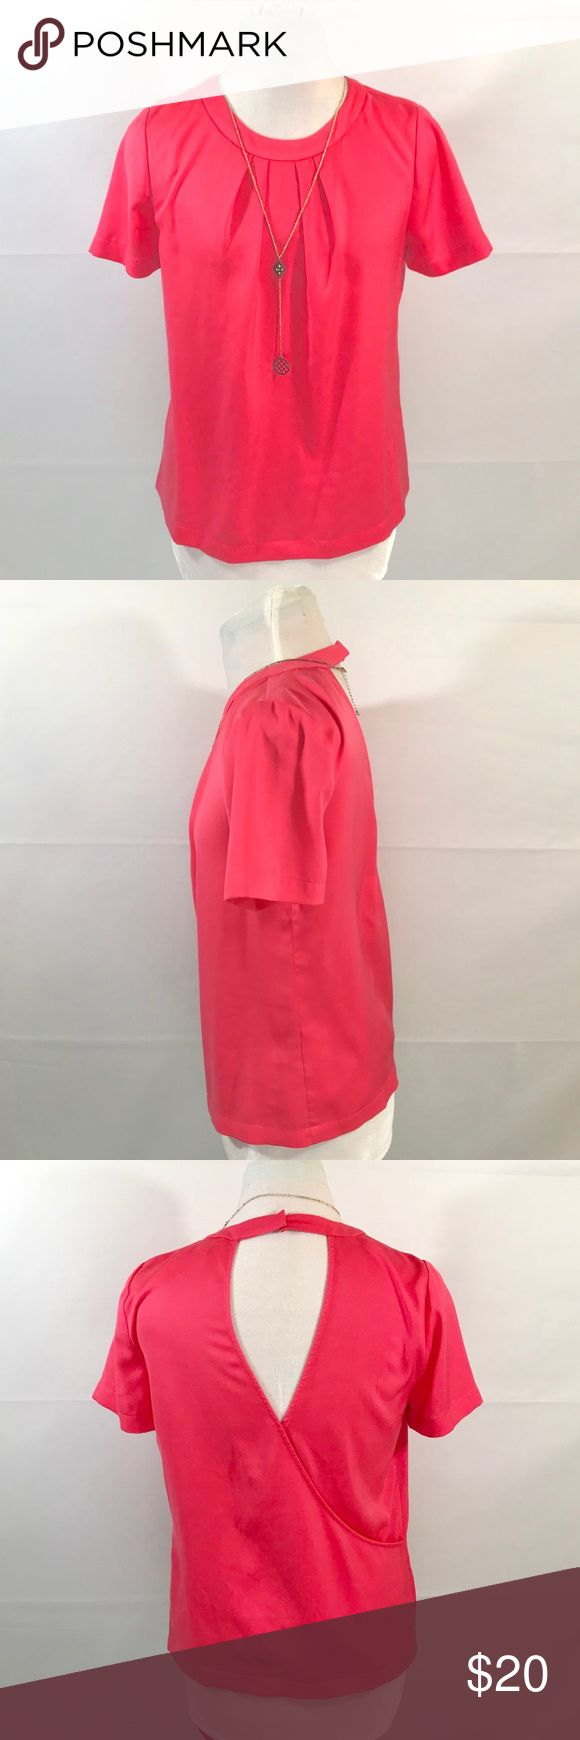 """J Crew Factory Pink Blouse w/ Crisscross Backing💖 This blouse is lightweight and perfect for the spring season. 🌷 This blouse can be paired easily with a pair of skinny jeans as casual wear or with black slacks for a more business look. The back has a stylish peek a boo design with crisscross lining. 👚🤩  Very clean blouse, No stains.  Size XS Measurements  Bust 18"""" Shoulder to shoulder 14"""" Length from back 23"""" 100% Polyester Feel free to ask me any questions  Offers Considered 🤗 J. Crew Factory Tops Blouses"""